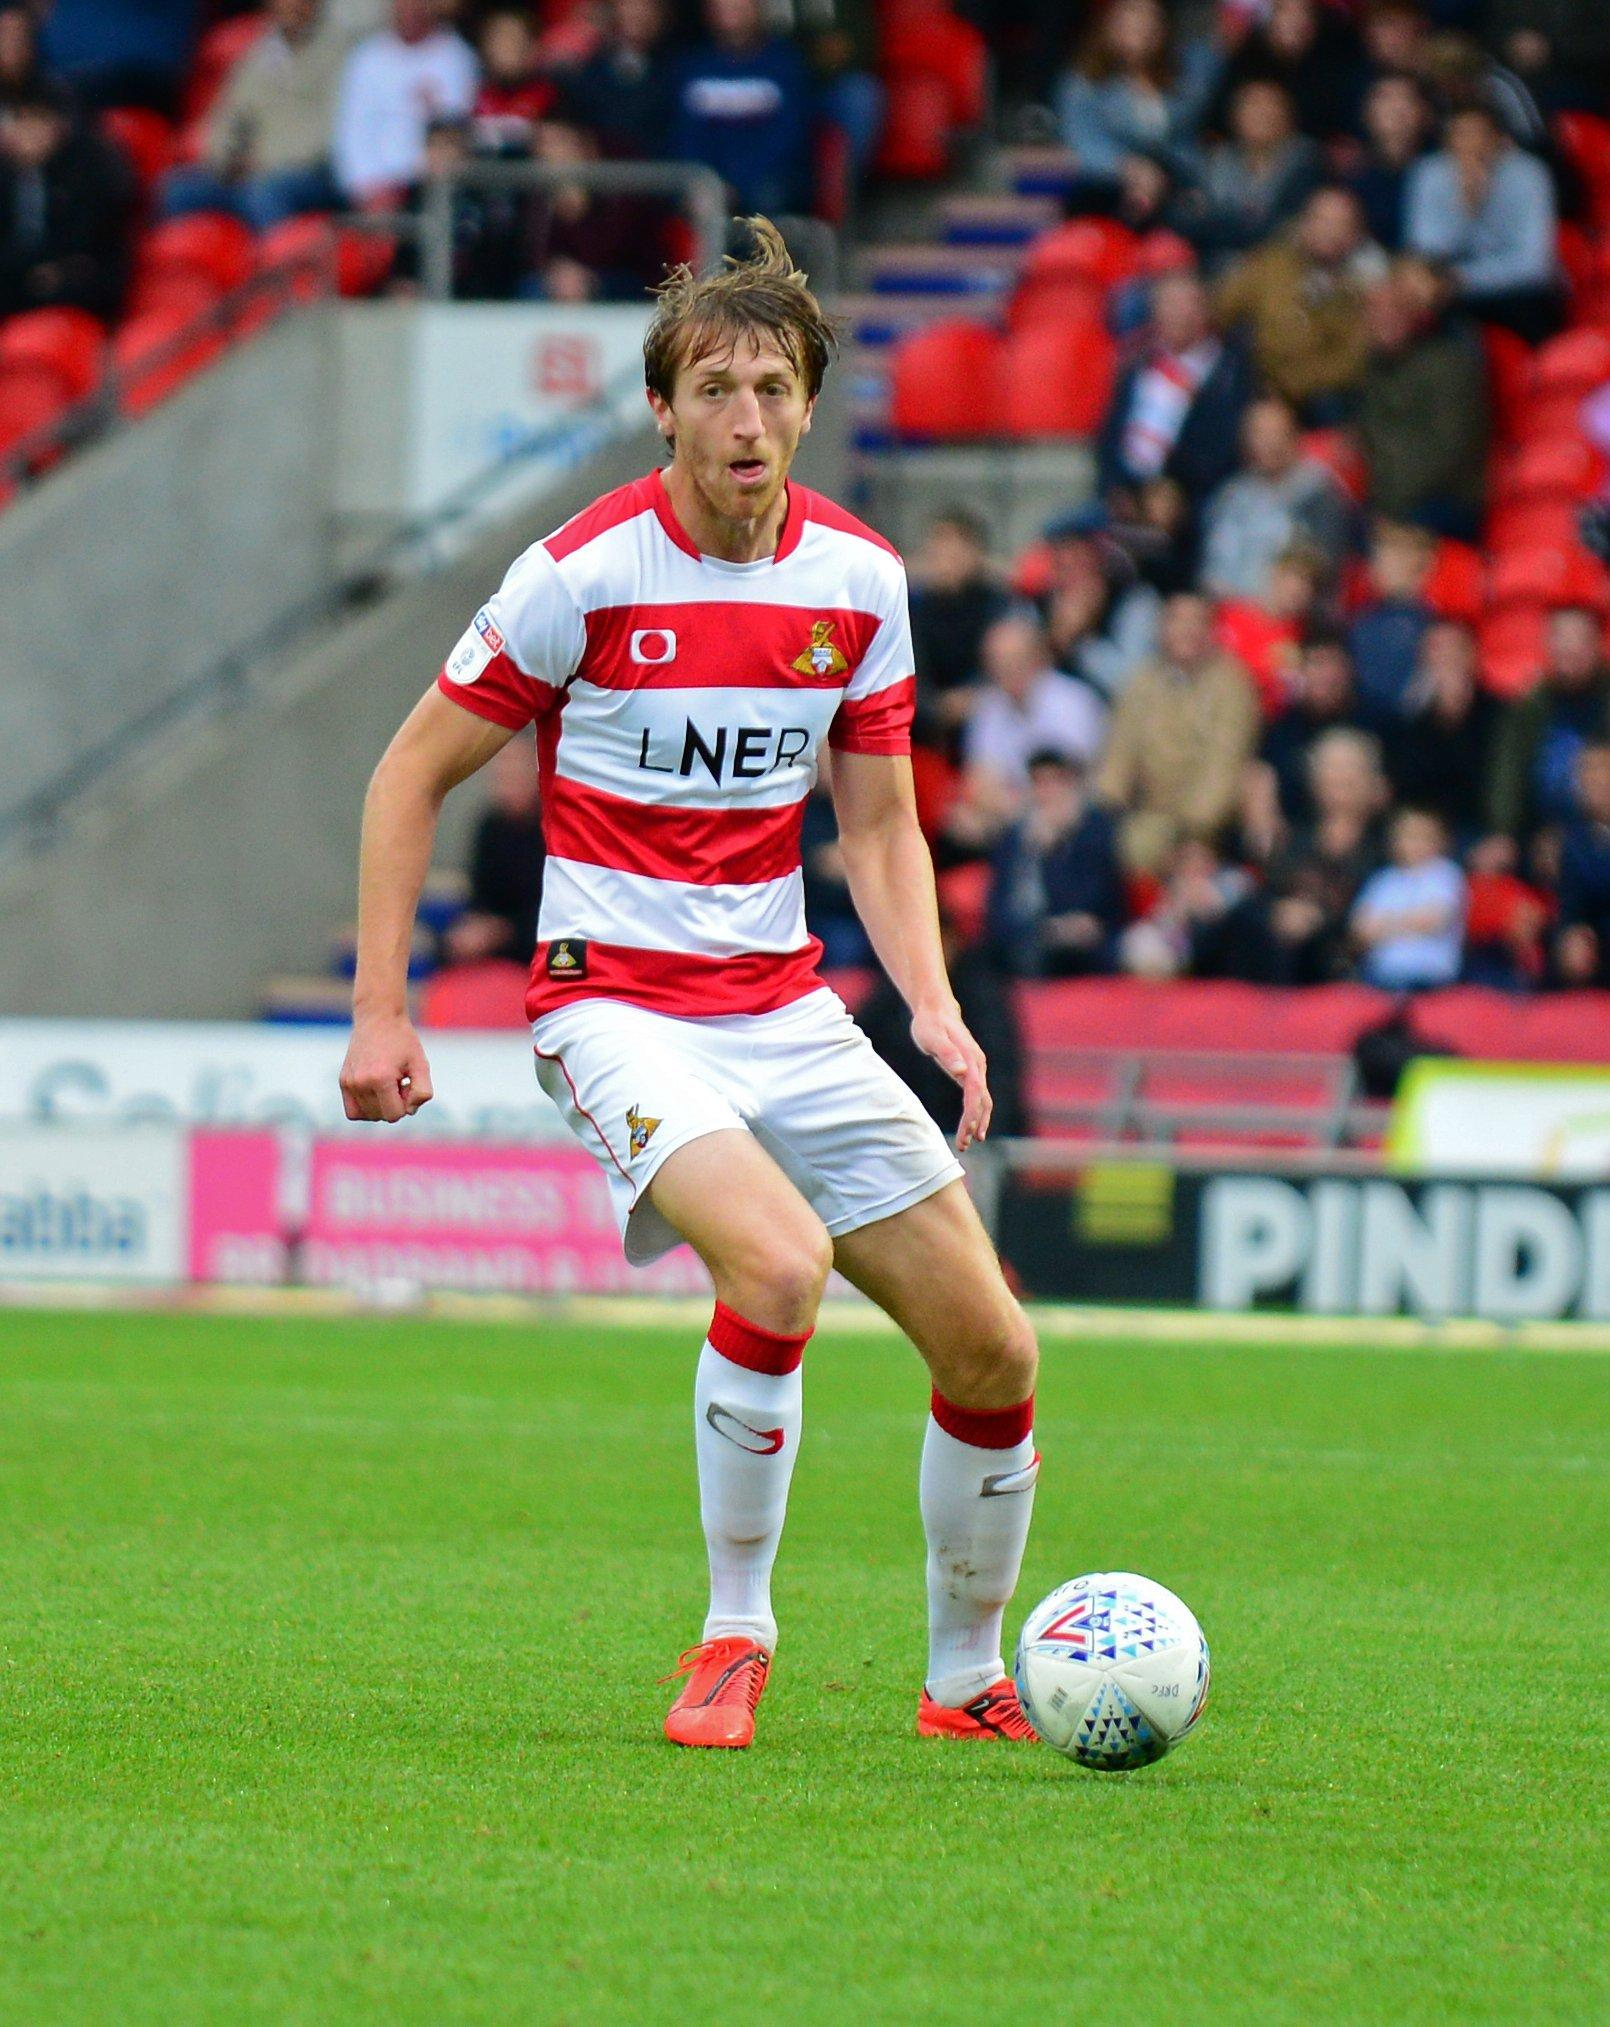 Doncaster Rovers: Tom Anderson on ever-changing defensive partners, form and scoring goals - Doncaster Free Press